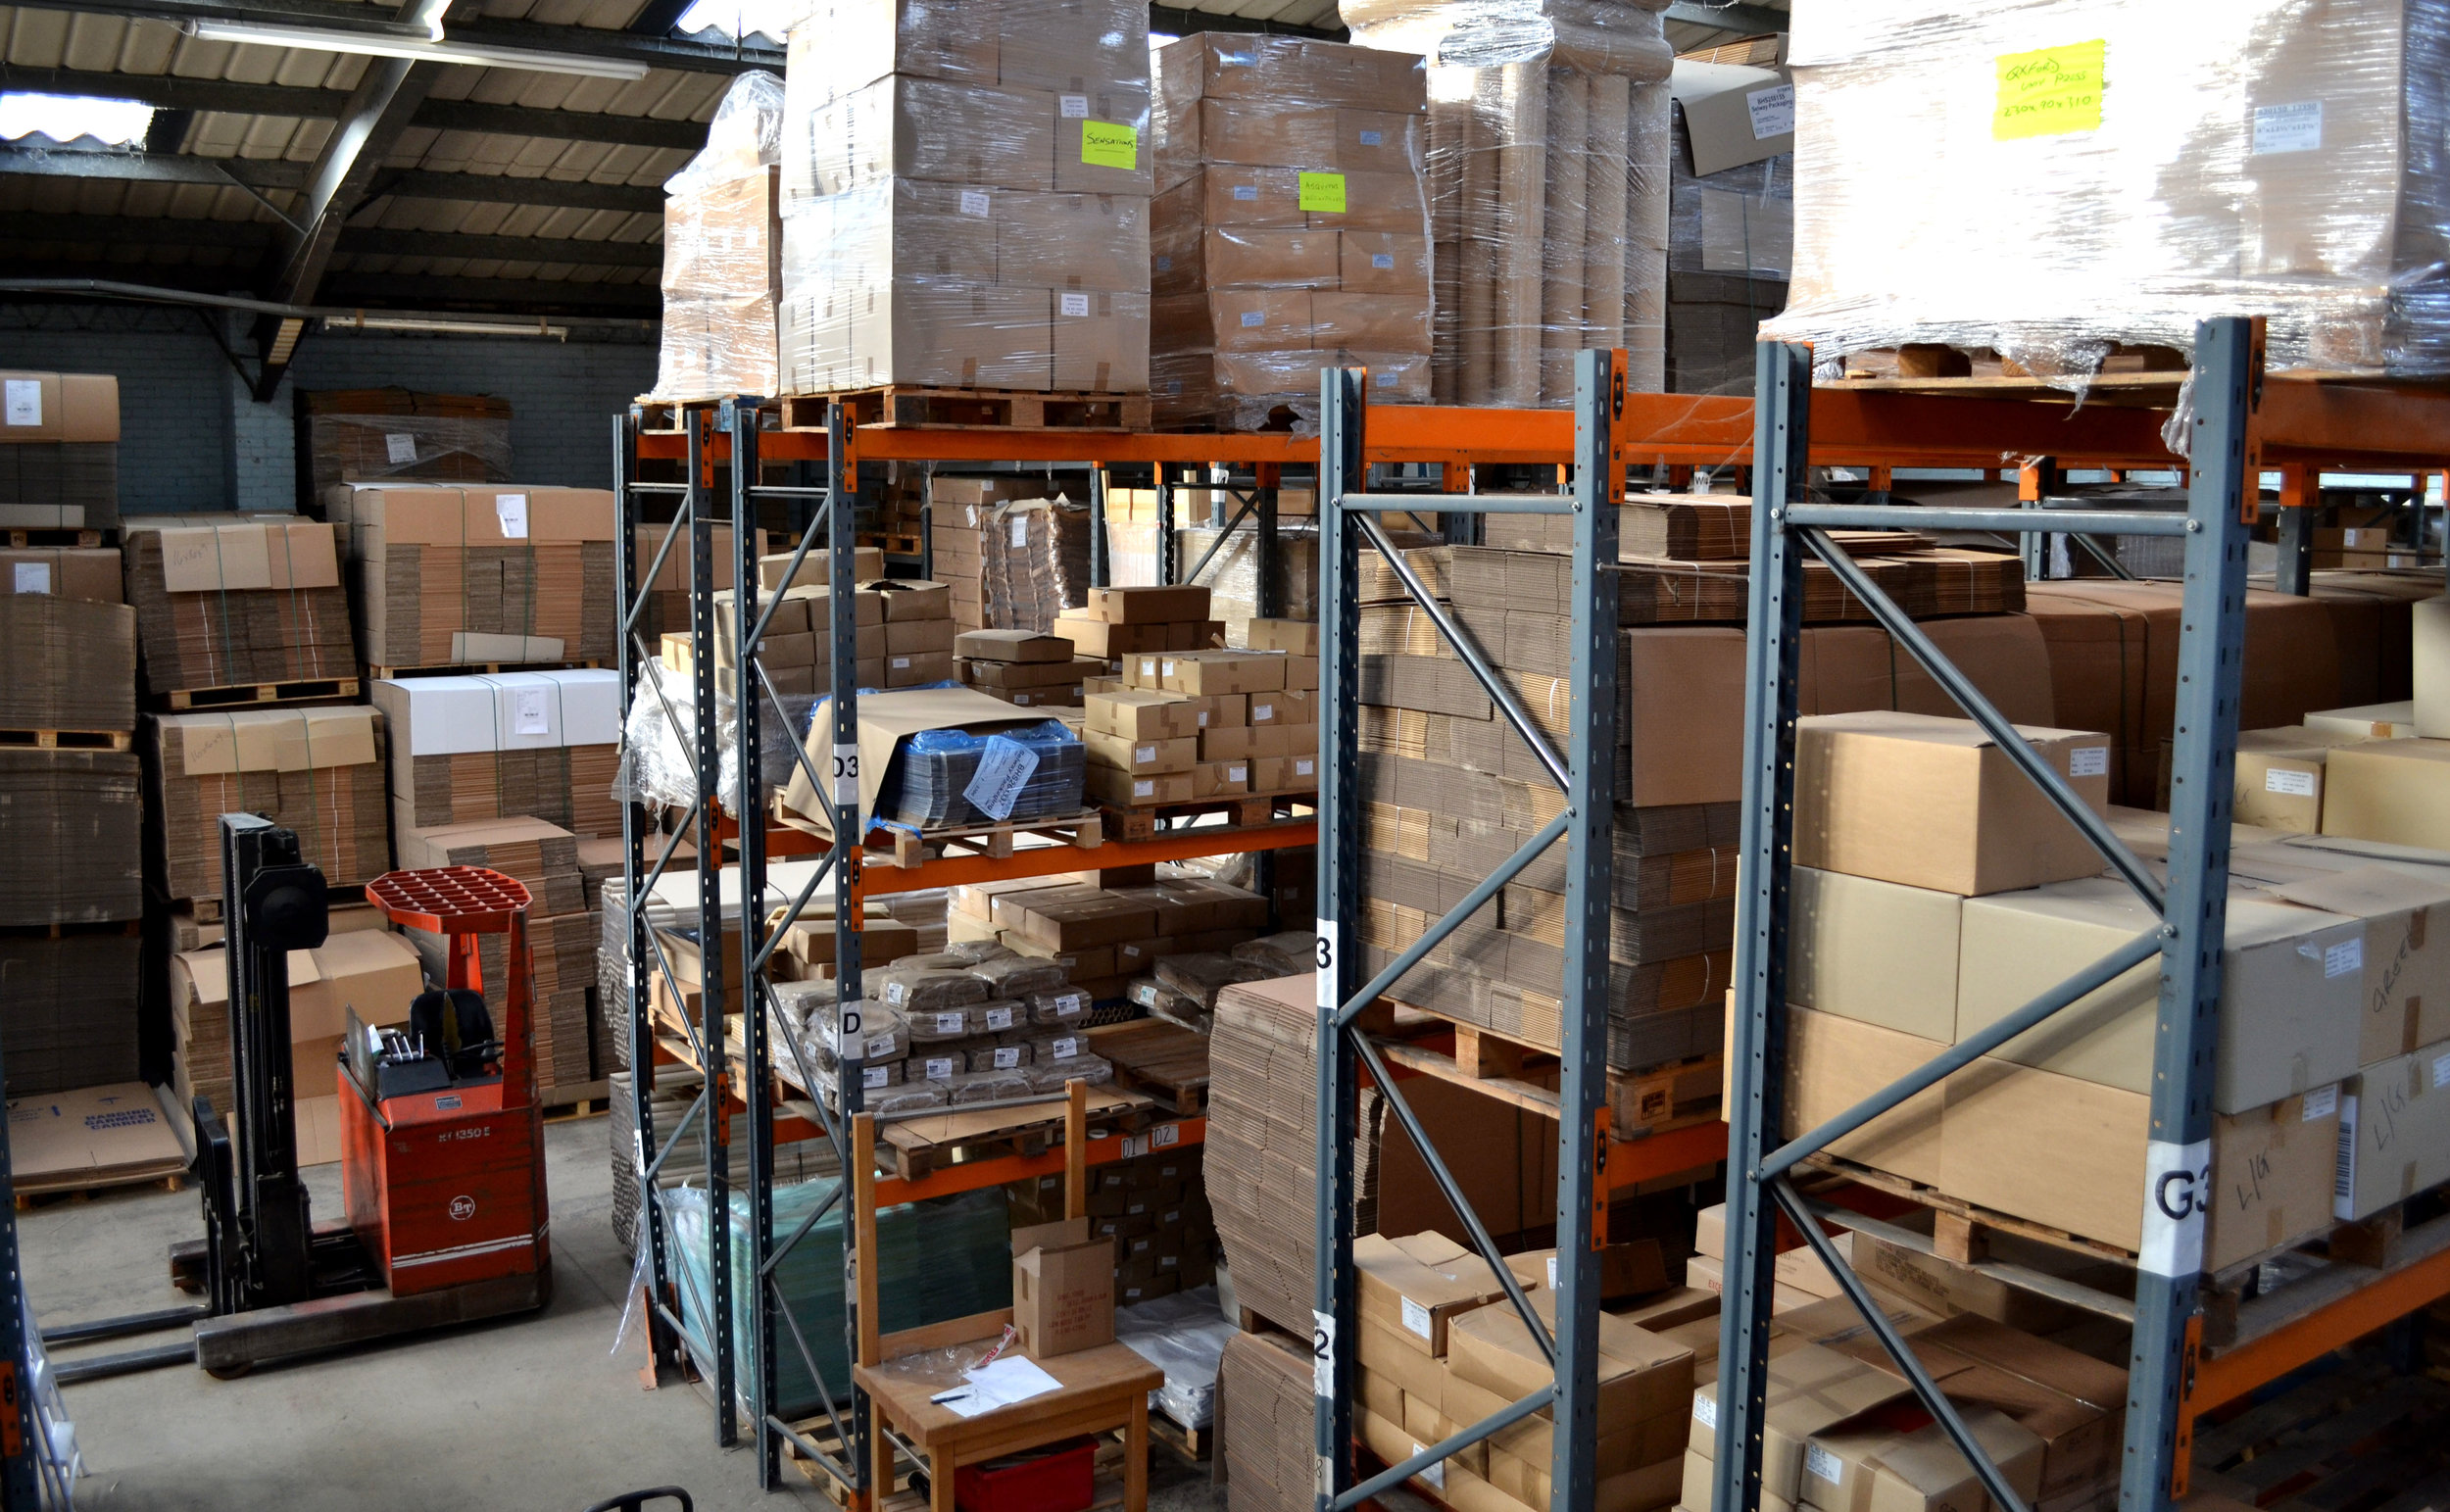 WAREHOUSE SPACE - Providing secure, accessible and convenient warehouse space. We can cater for the storage and distribution needs of your business operation!